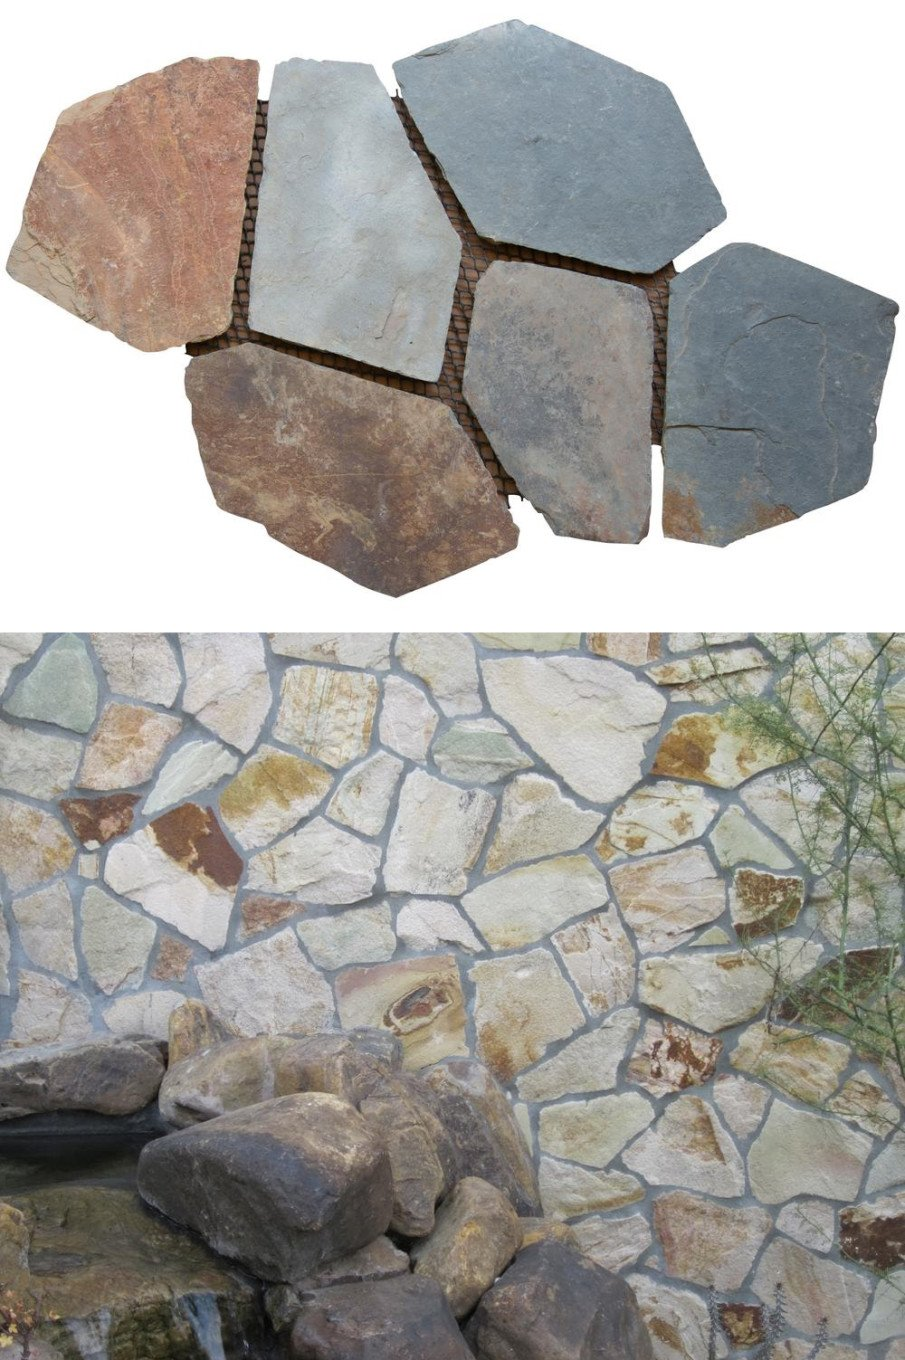 Mesh style Flagstone Patio designs using sections